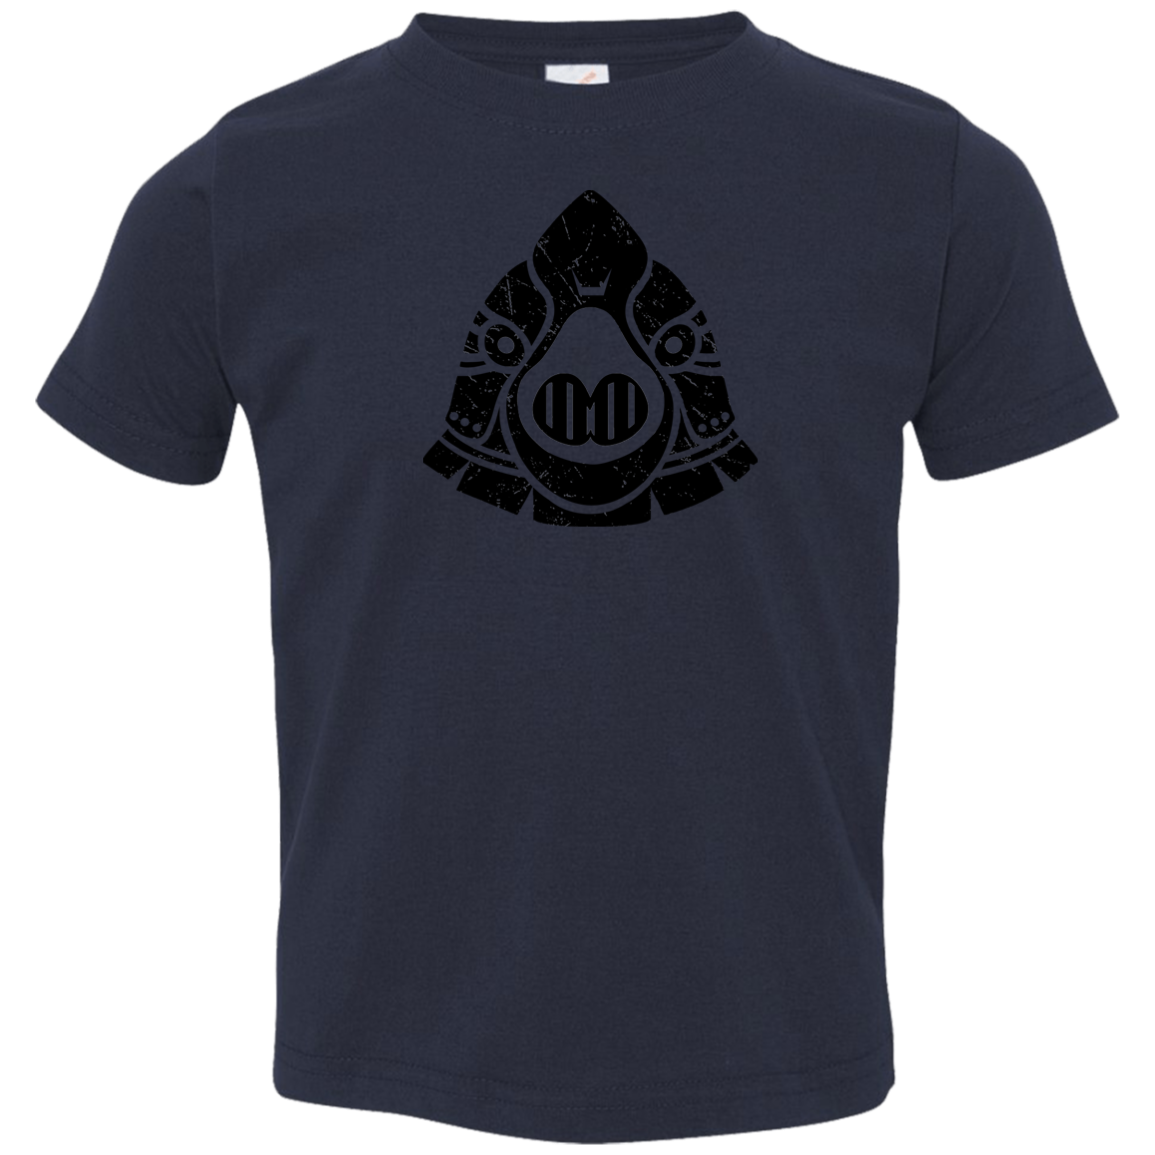 Black Distressed Emblem T-Shirts for Toddlers (Chicken/Cluck) - Dark Corps